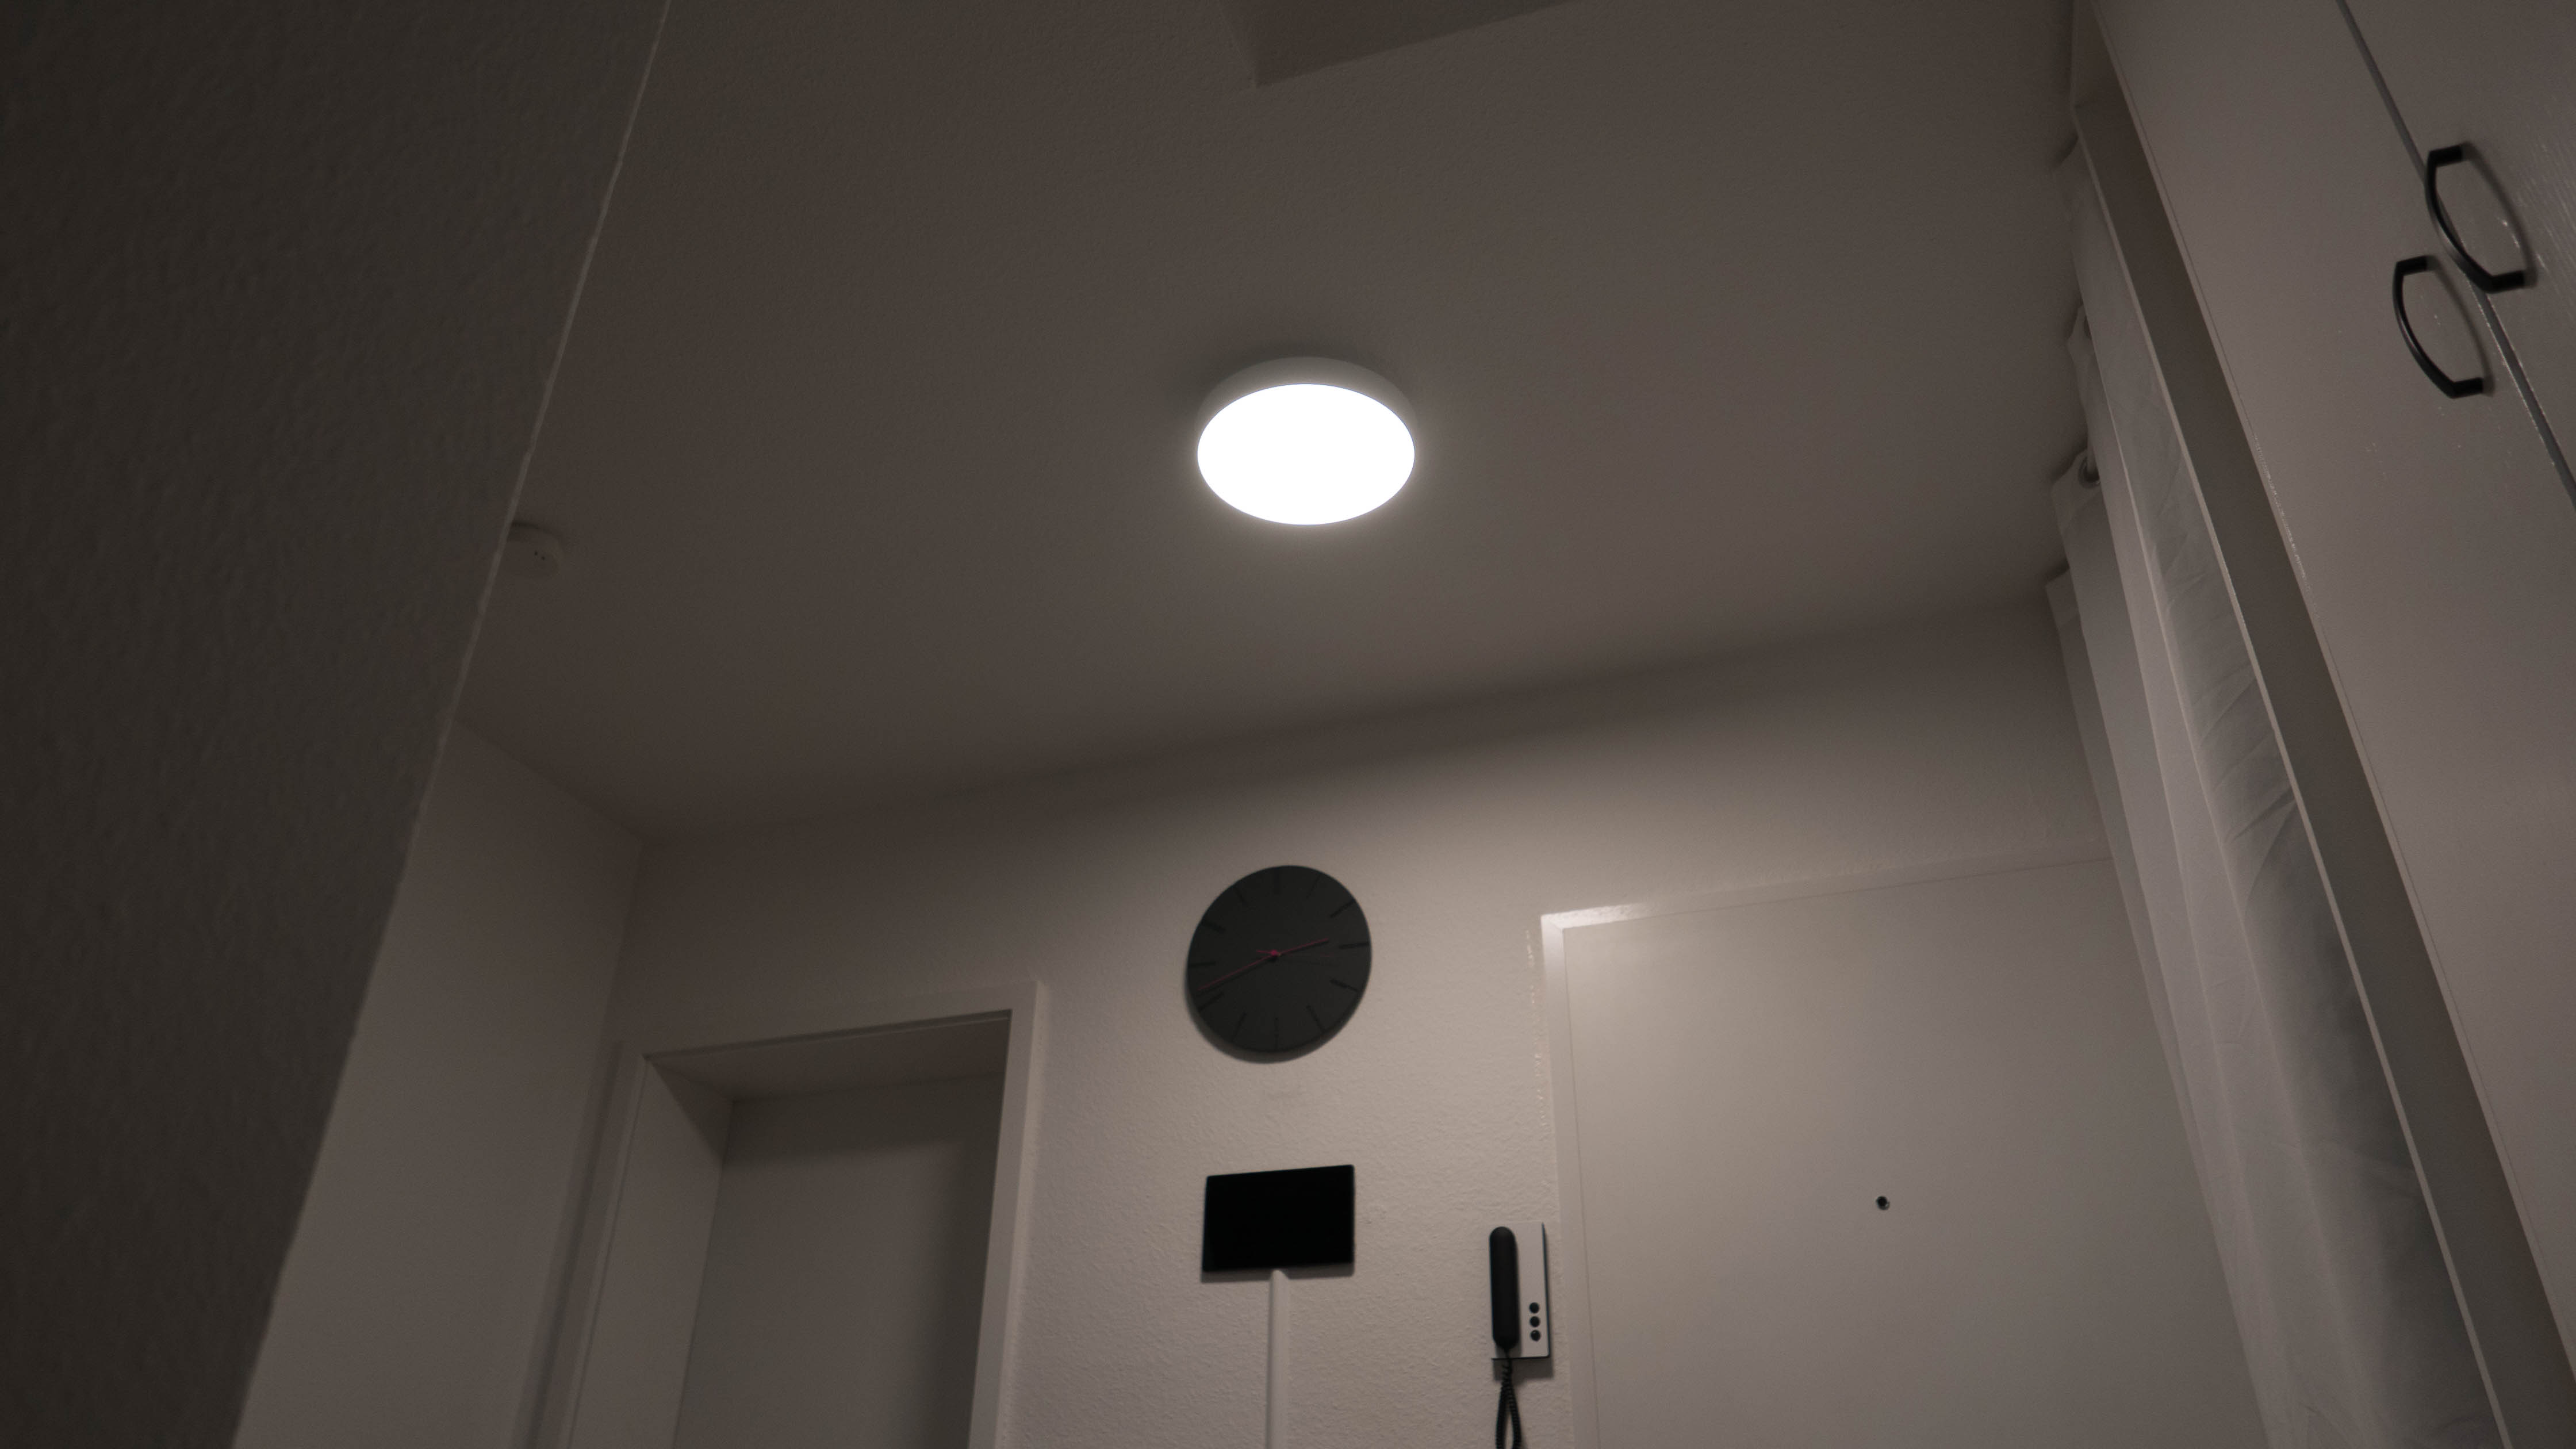 Xiaomi Yeelight LED Ceiling Light Farbtemperatur 5